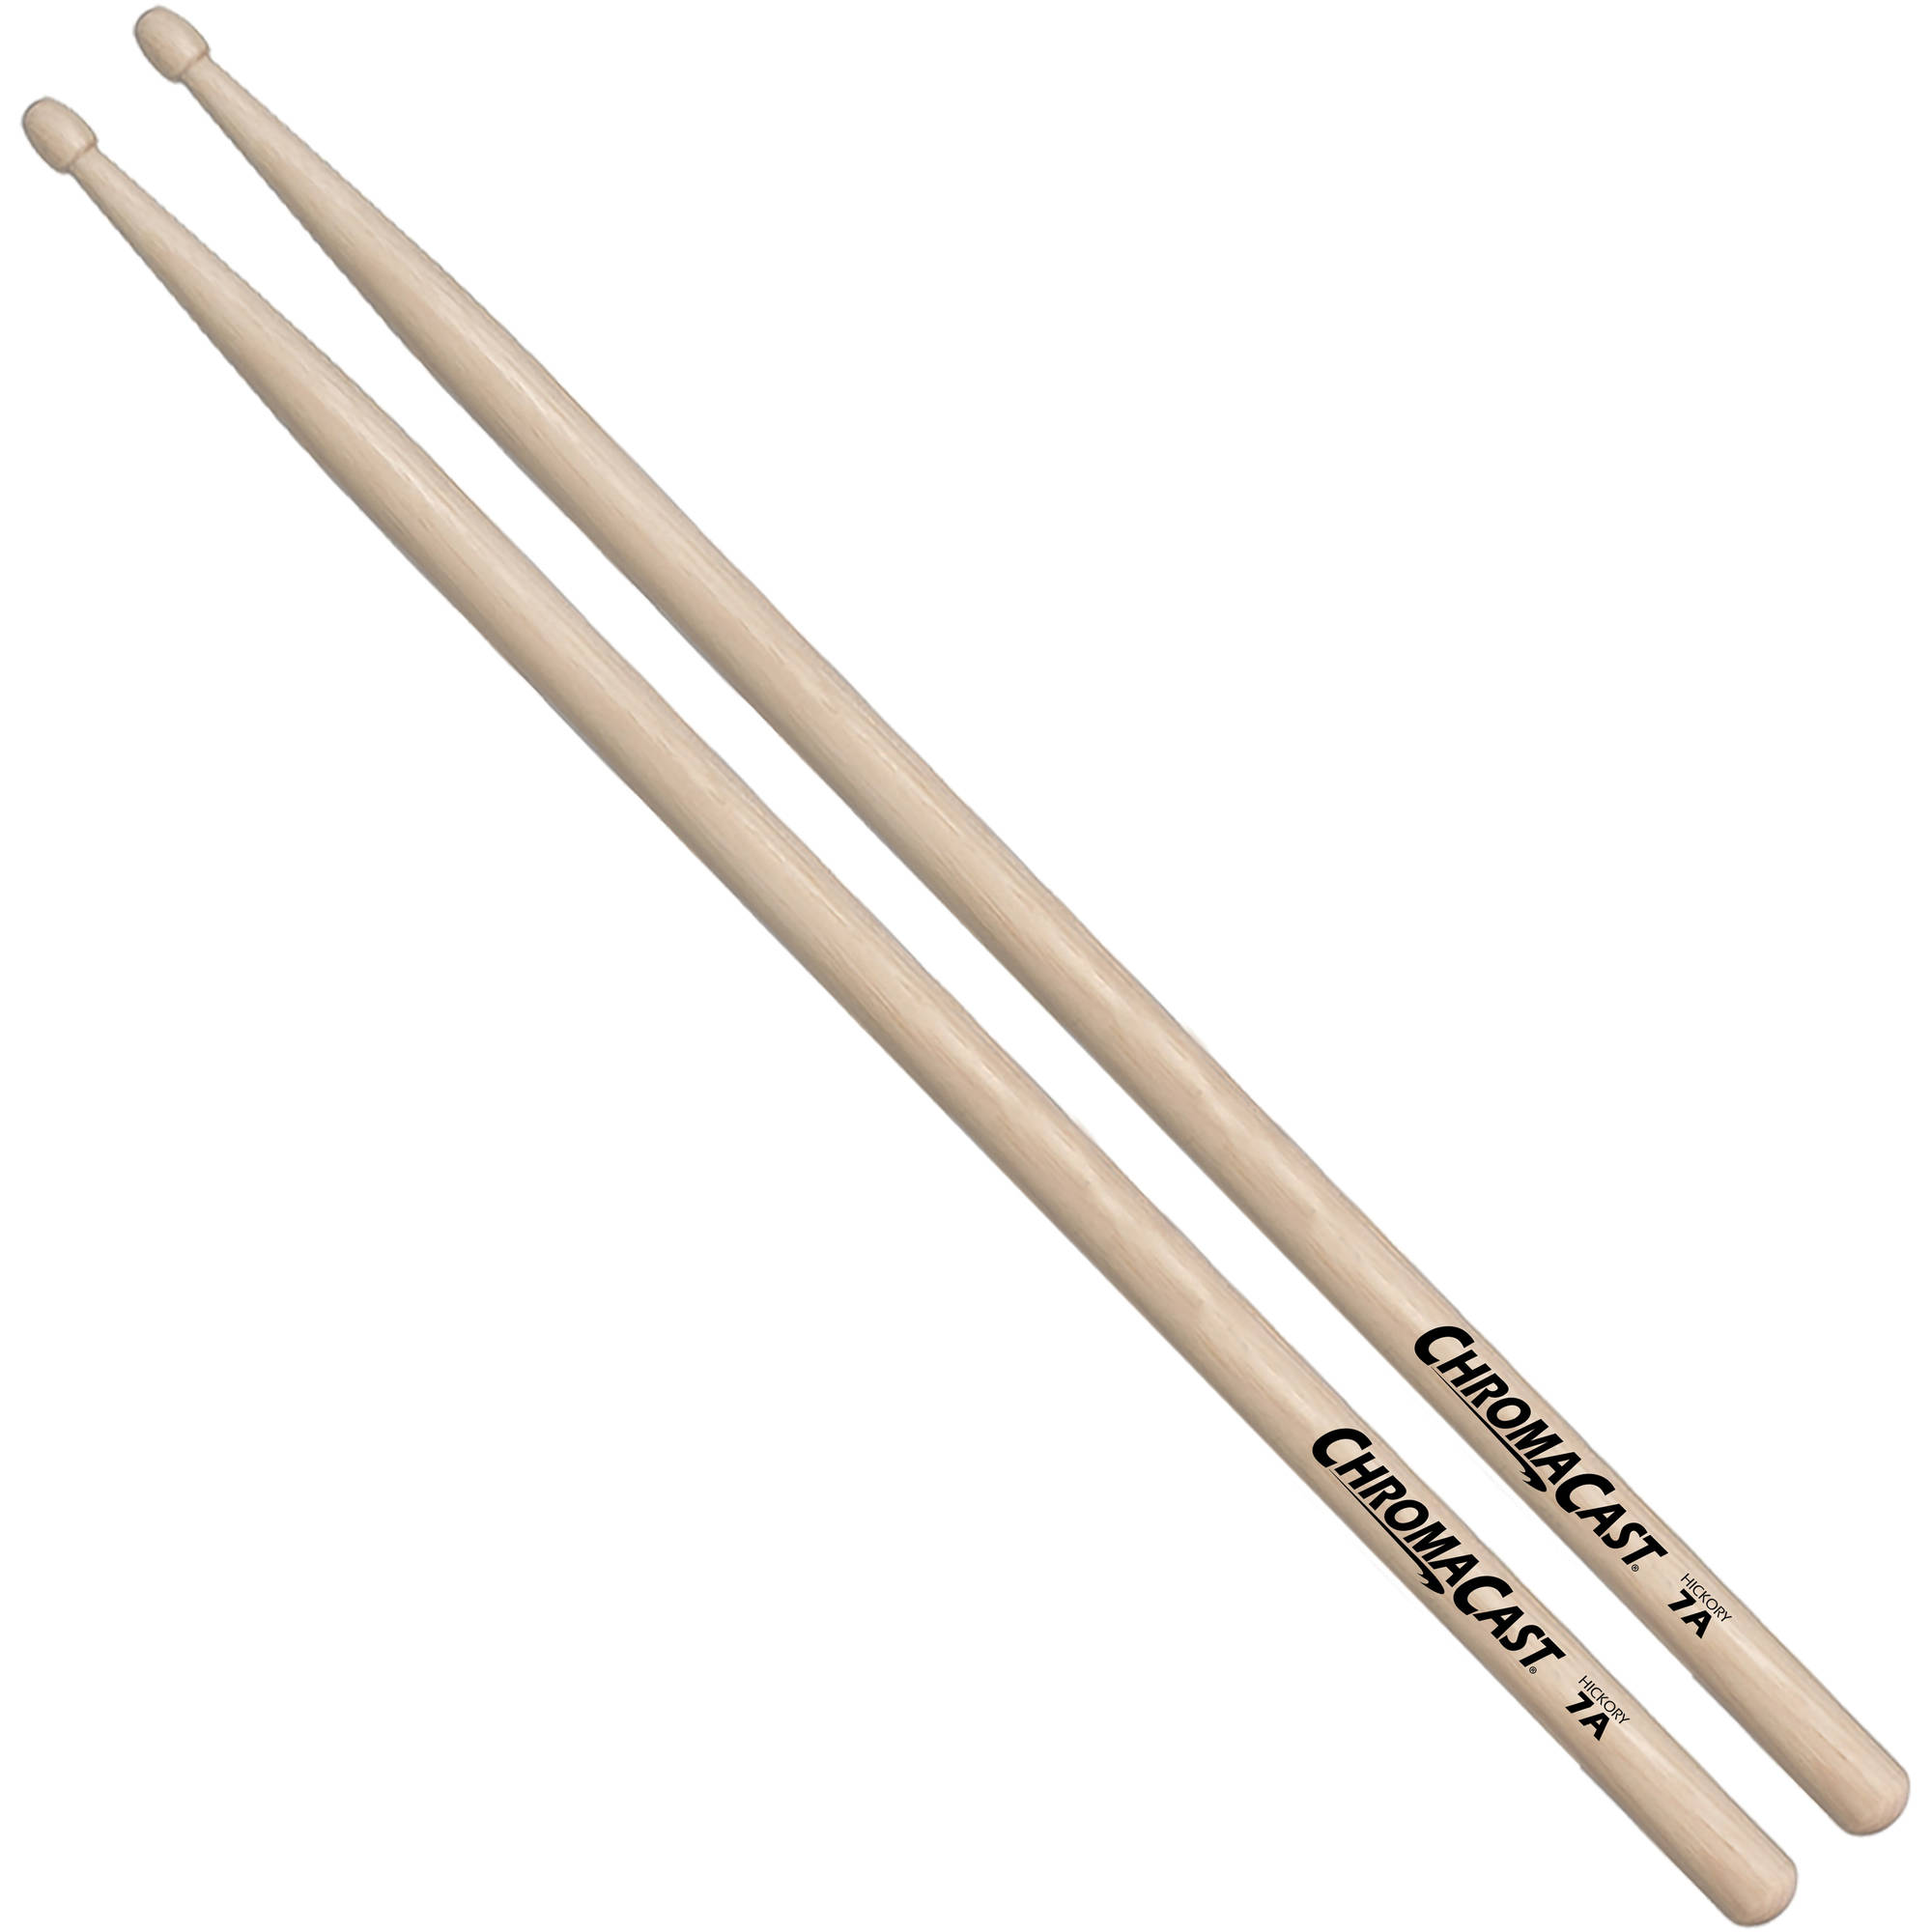 ChromaCast 7A Hickory Drumsticks by